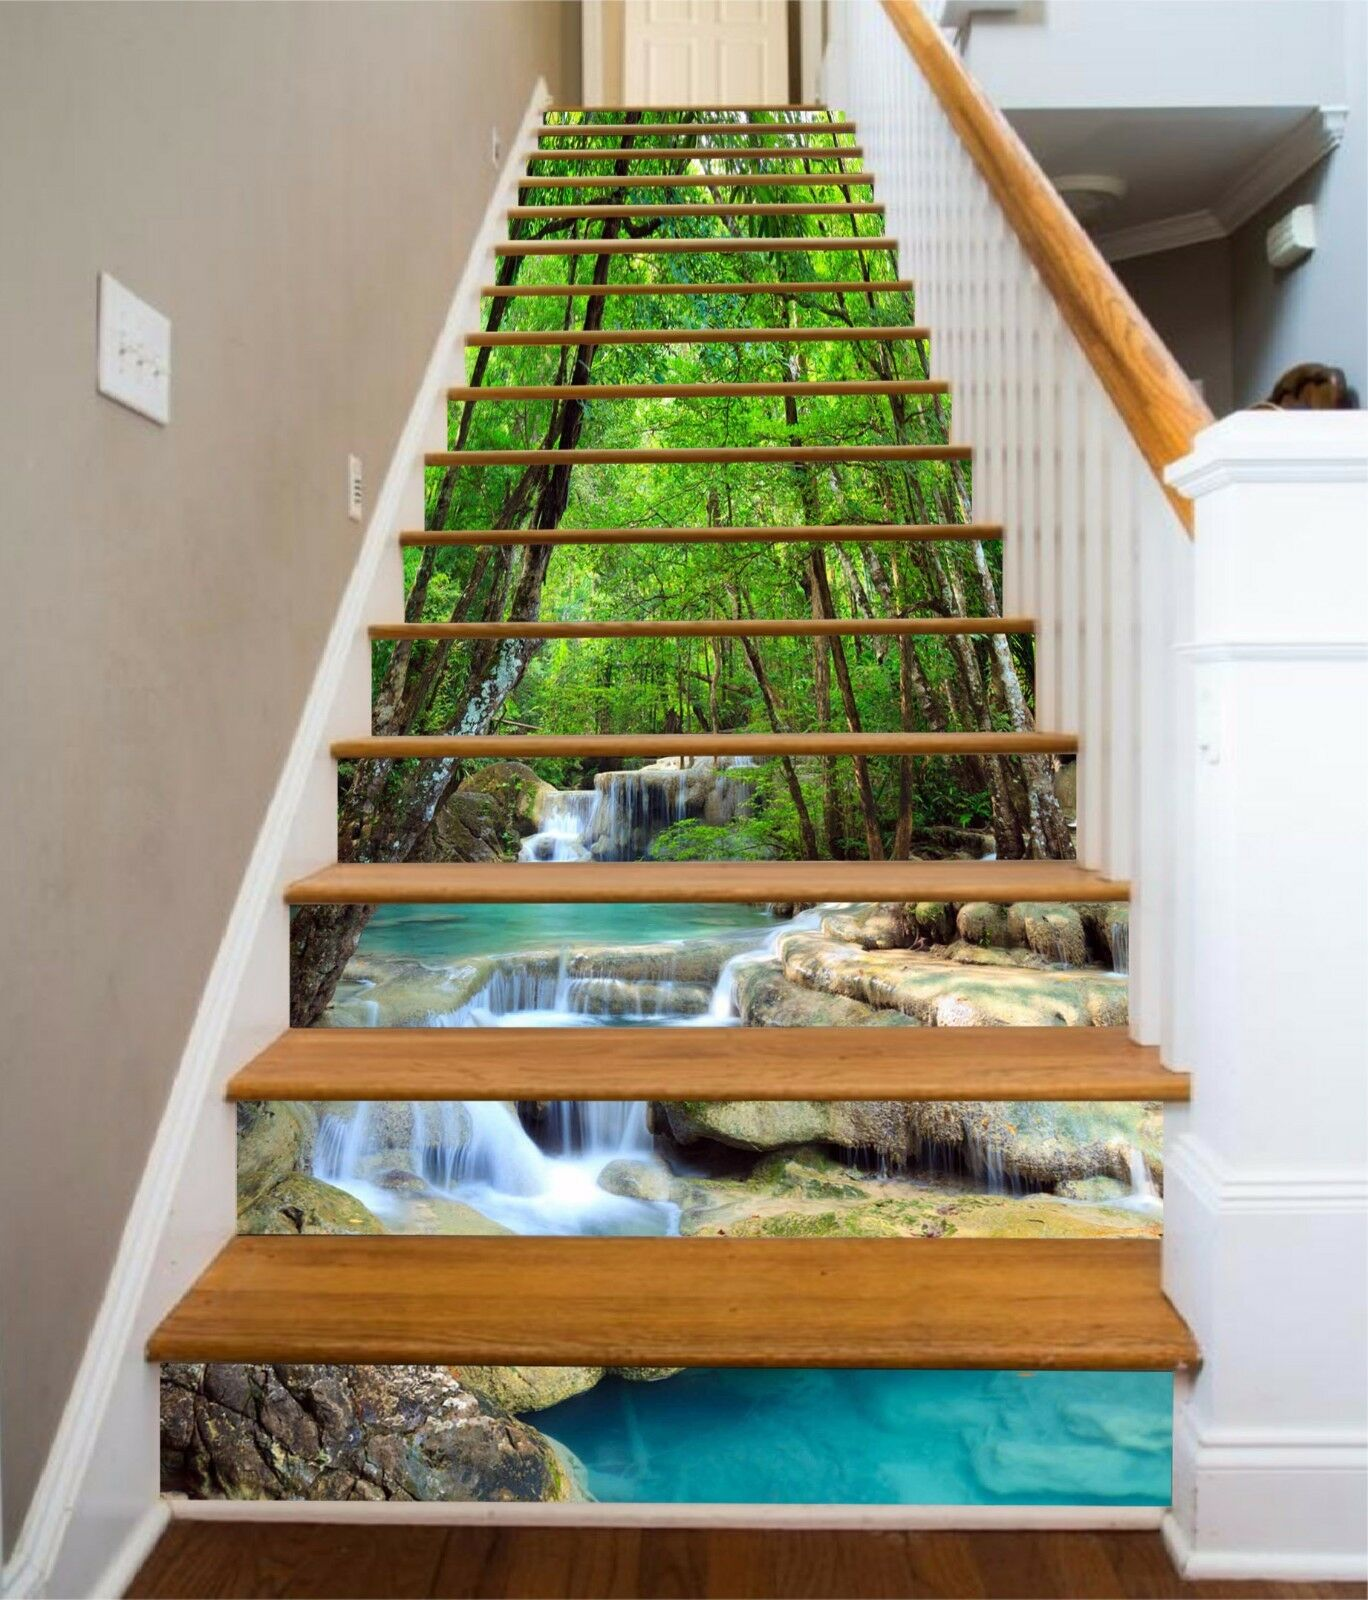 3D Forest River 863 Stair Risers Decoration Photo Mural Vinyl Decal Wallpaper AU